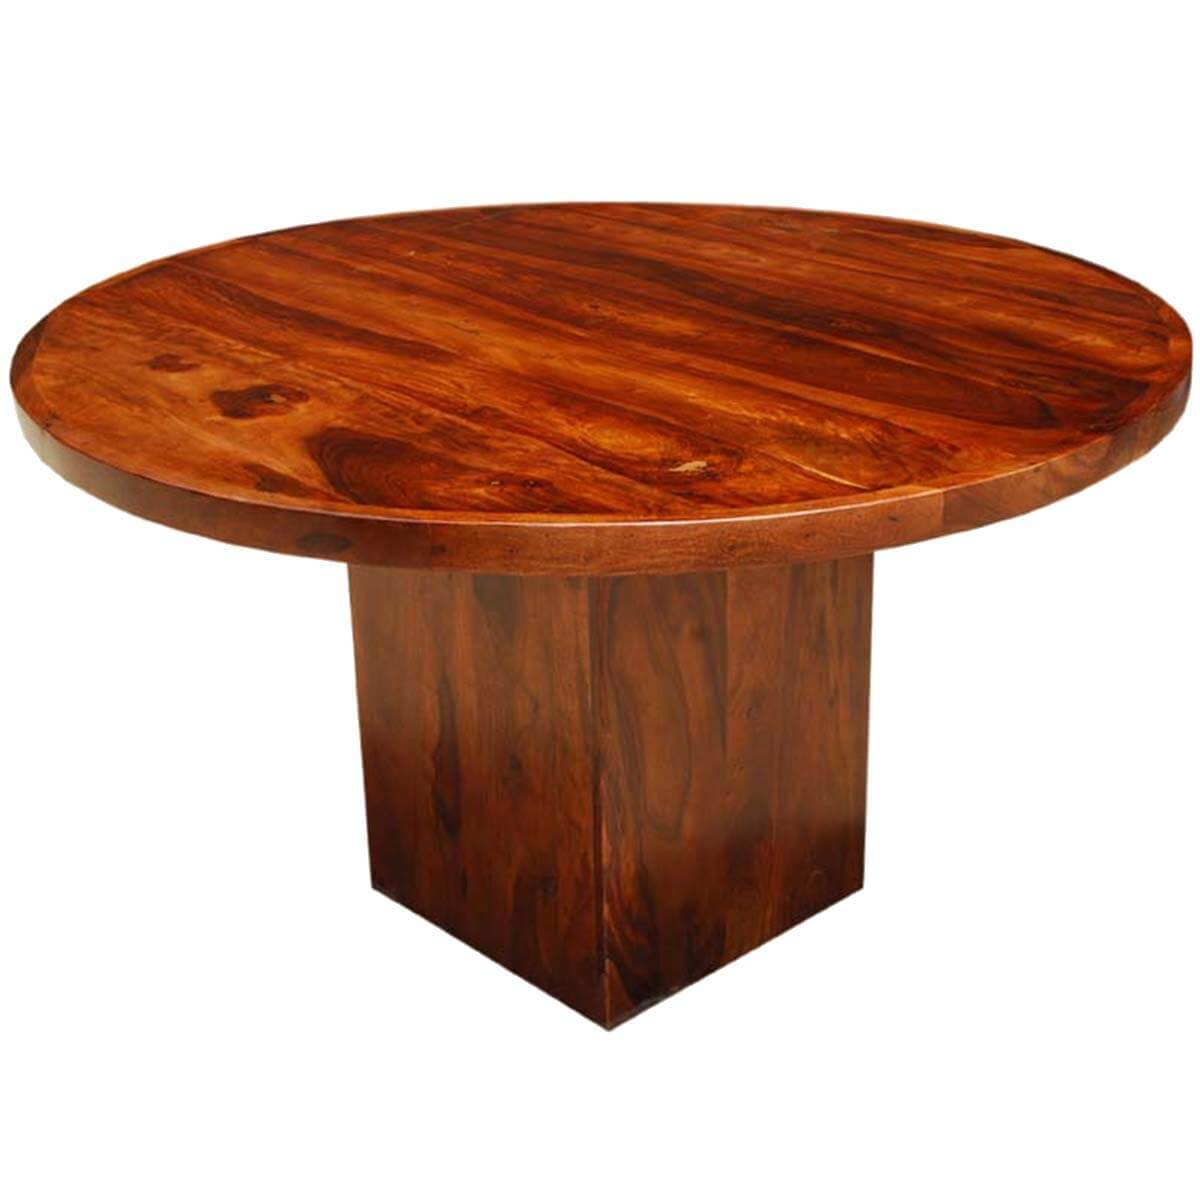 Solid wood rustic round dining table w square pedestal for Solid wood dining table